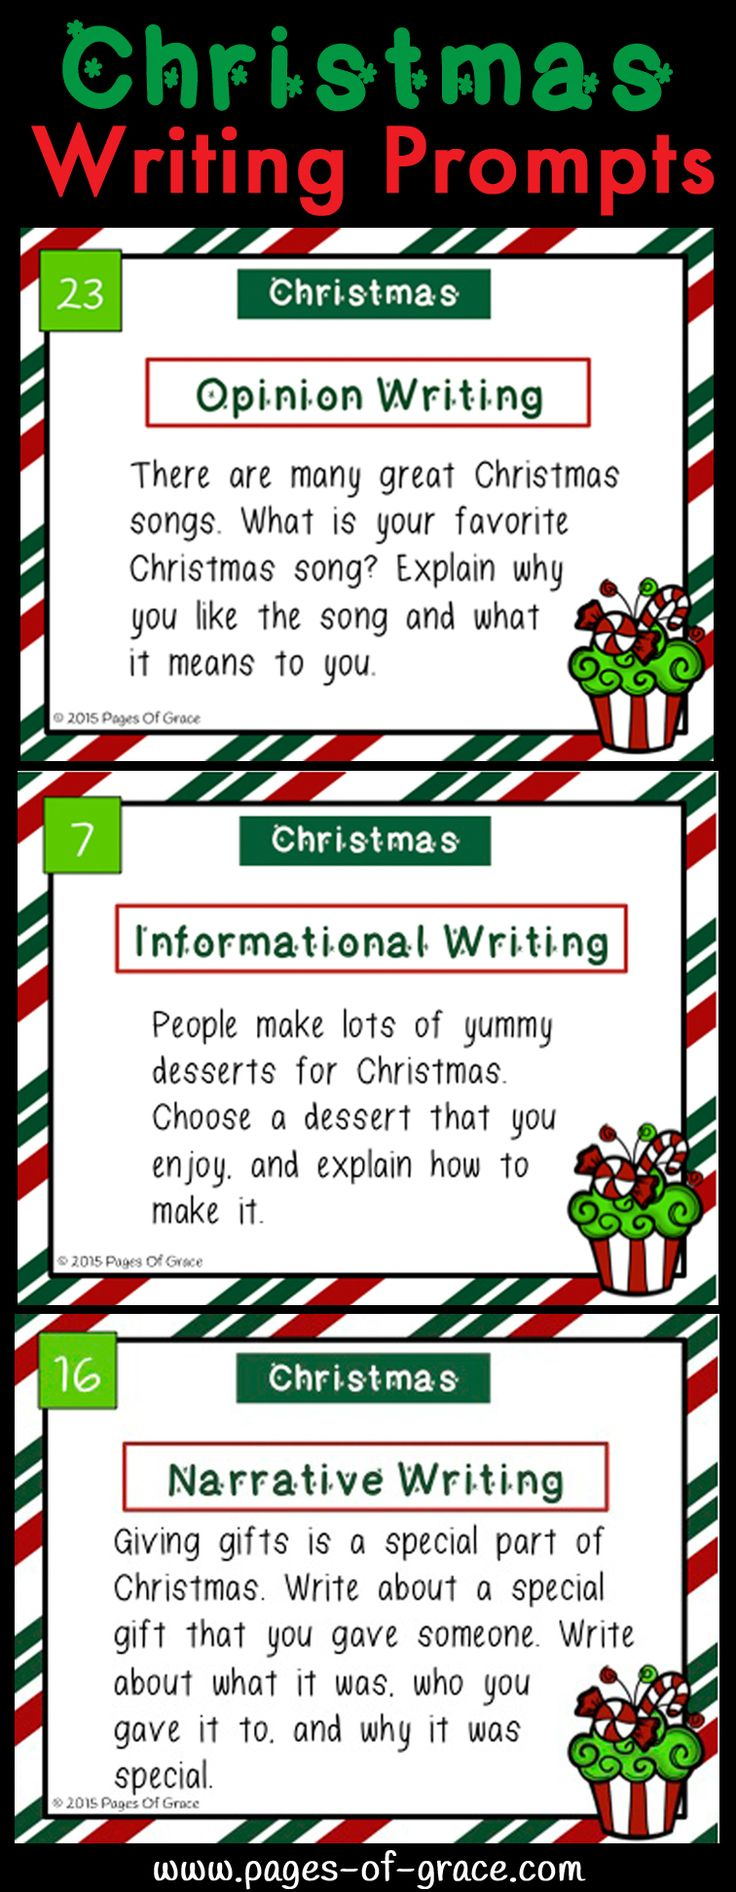 essay for christmas holiday Christmas essay christmas is a time going on for centuries it is possible that in your time at university or college, that you may be asked to write an essay on.